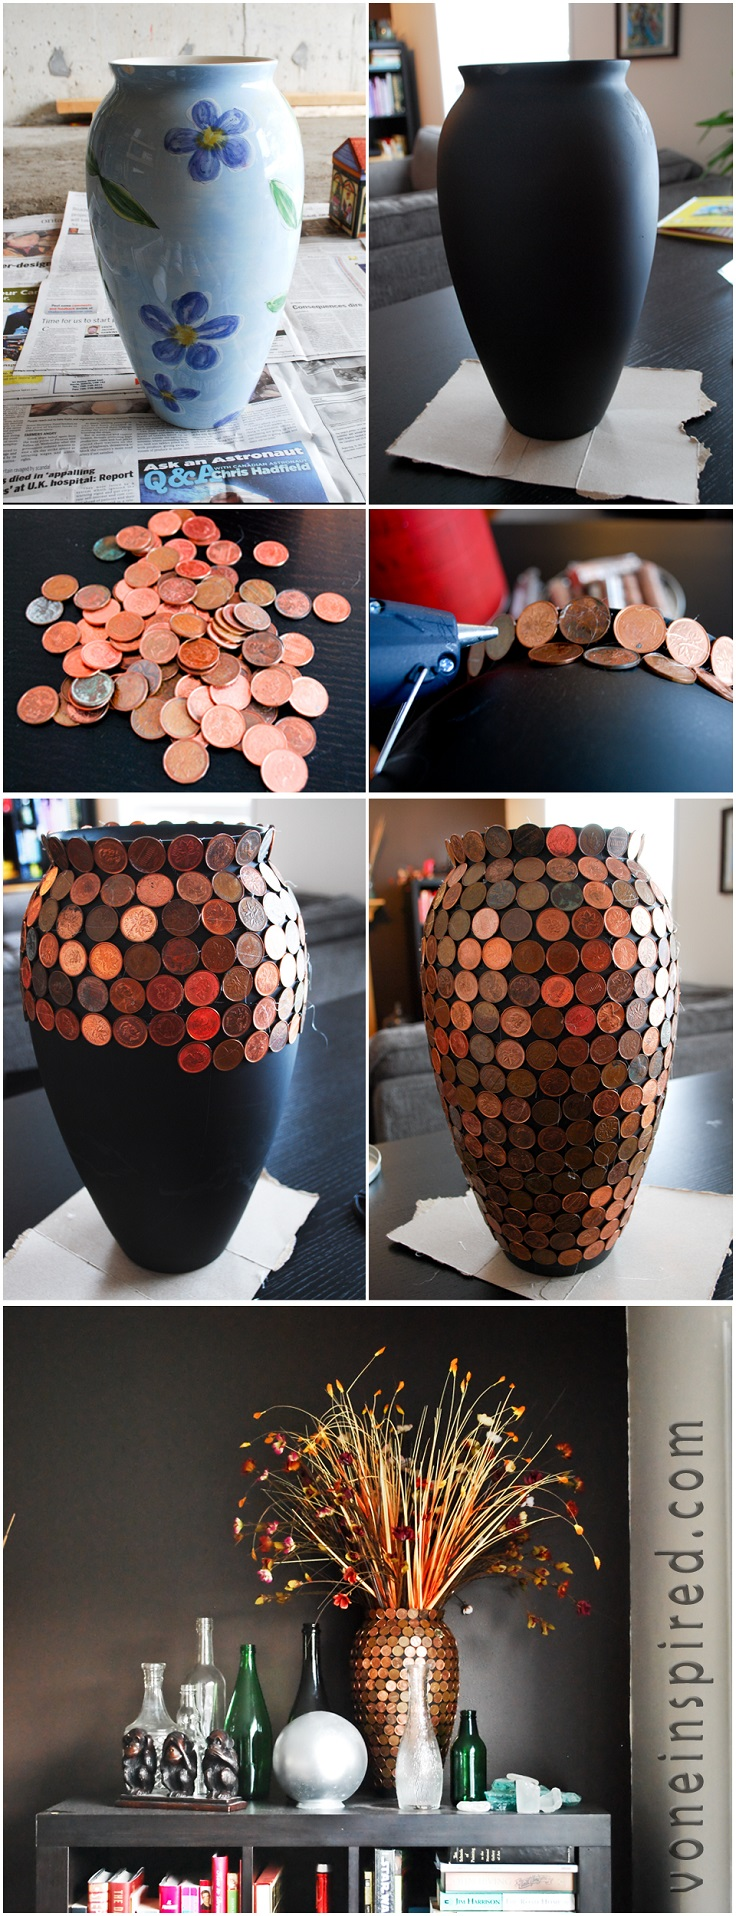 chalkboard-paint-and-pennies-vase1